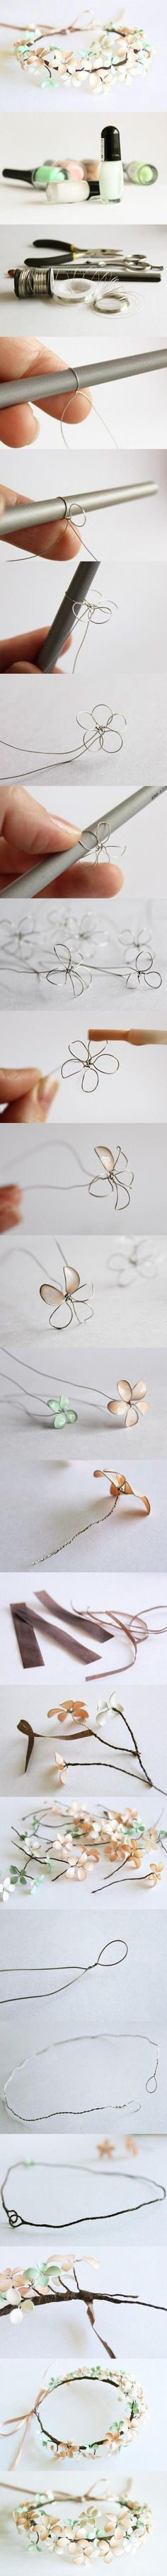 How to Make a DIY Flower Crown With NAIL POLISH and Wire